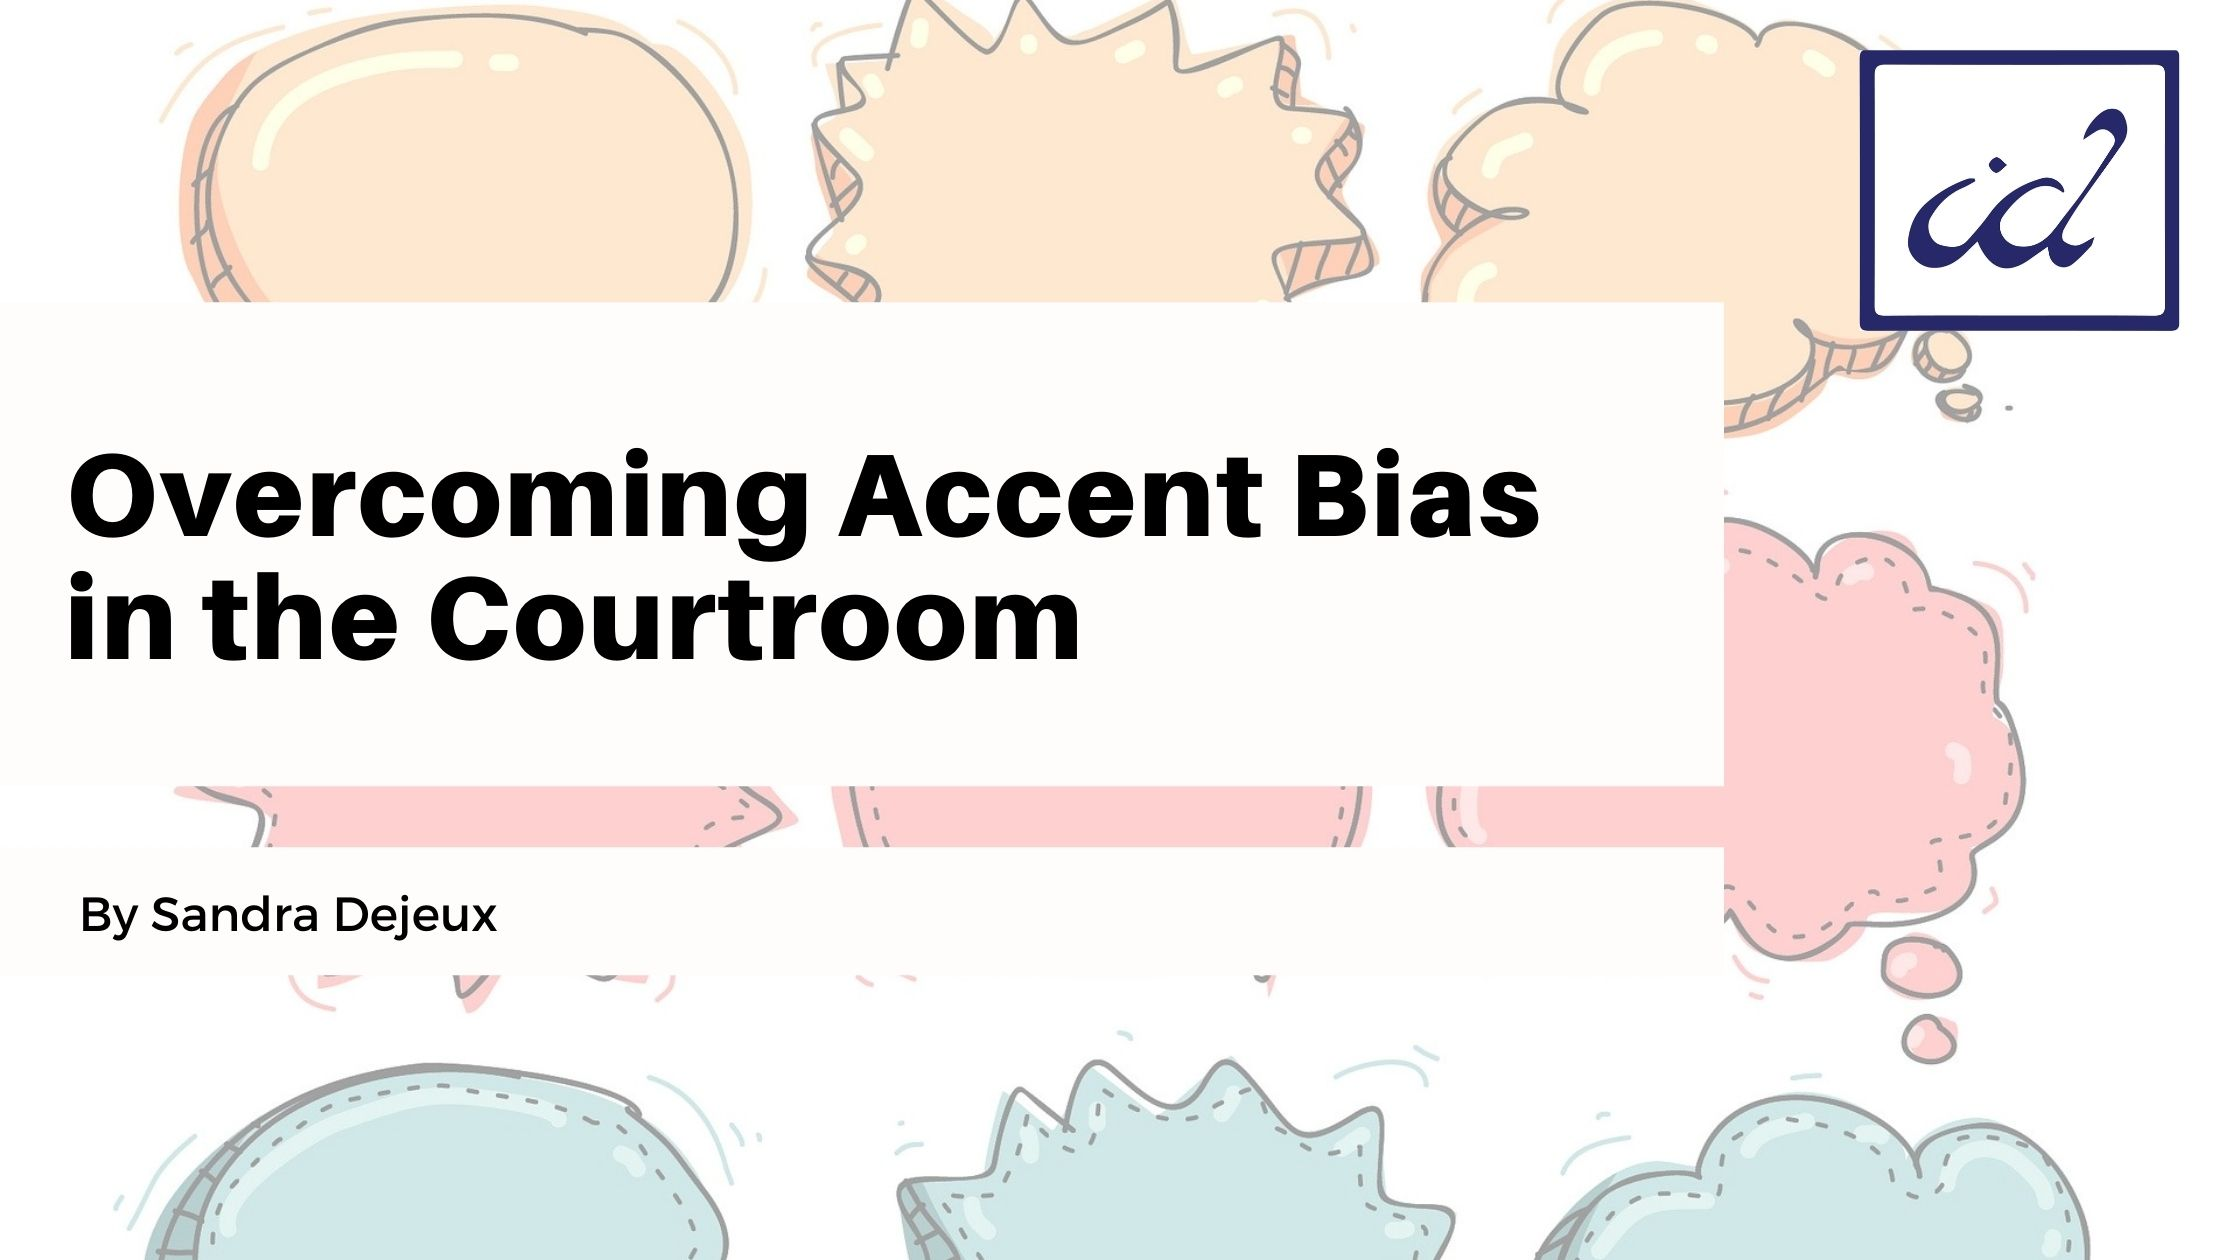 Link to the Overcoming Accent Bias in the Courtoom post